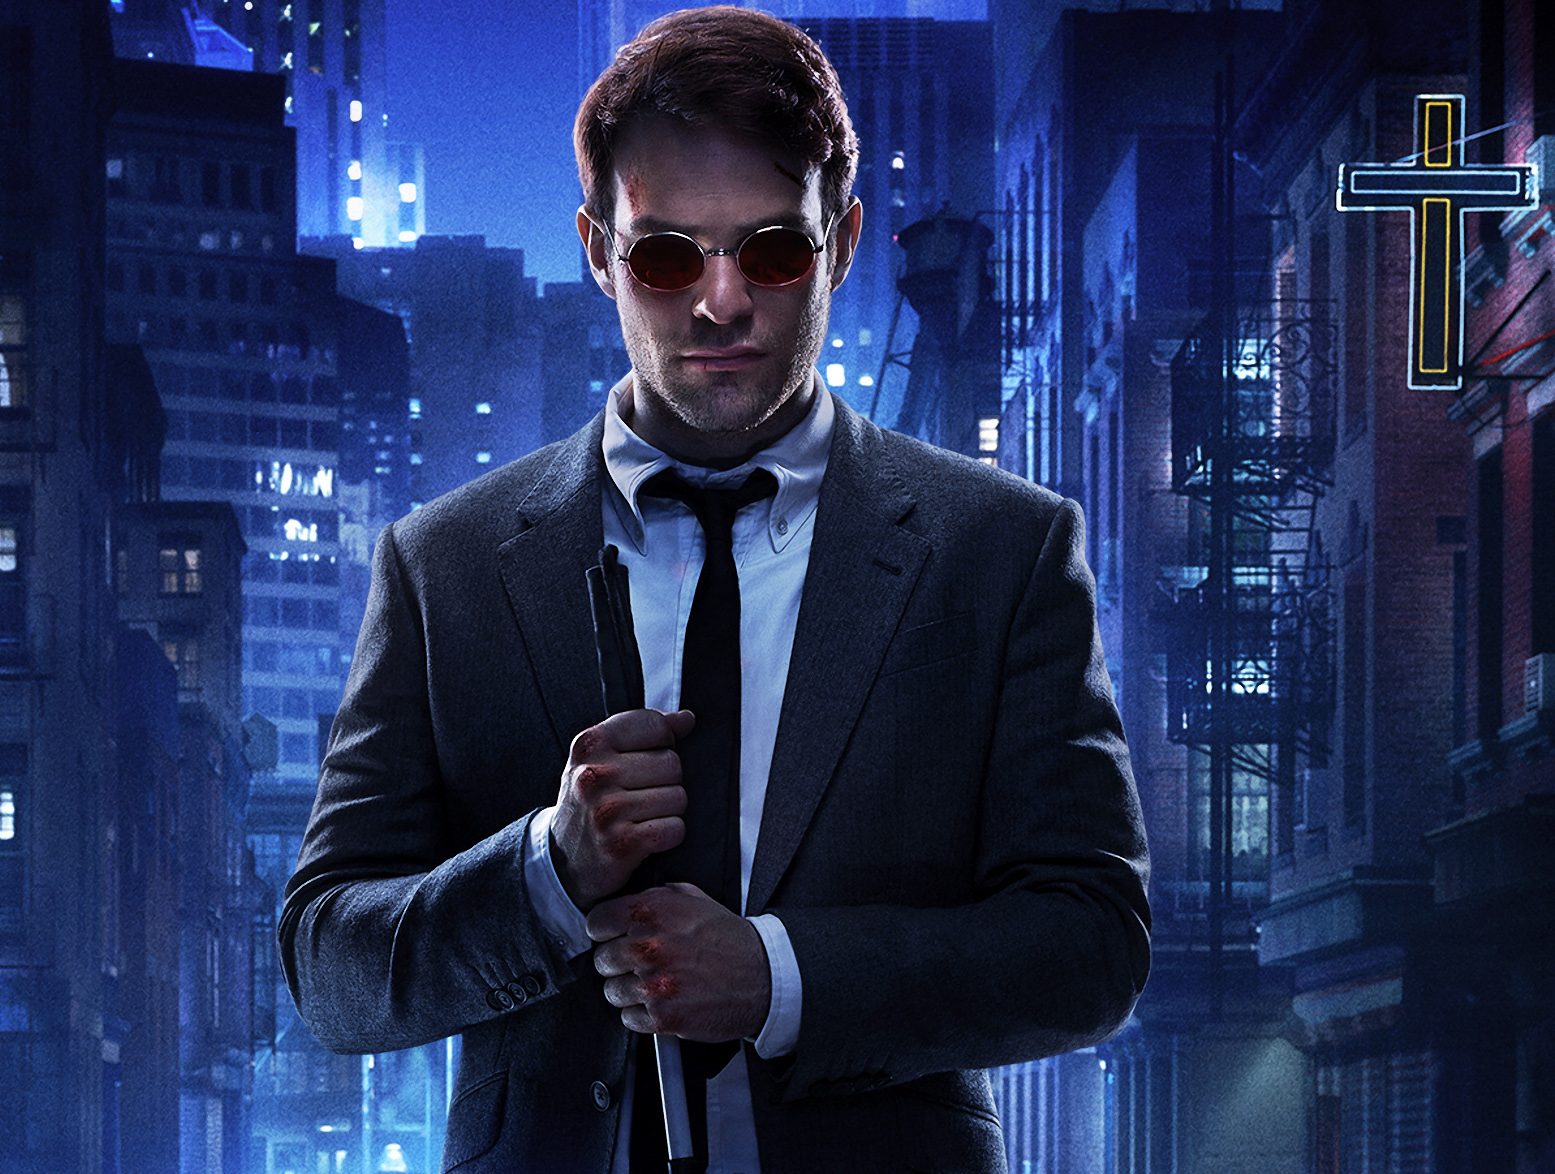 Charlie Cox In Marvel Daredevil Netflix Tv Series Poster